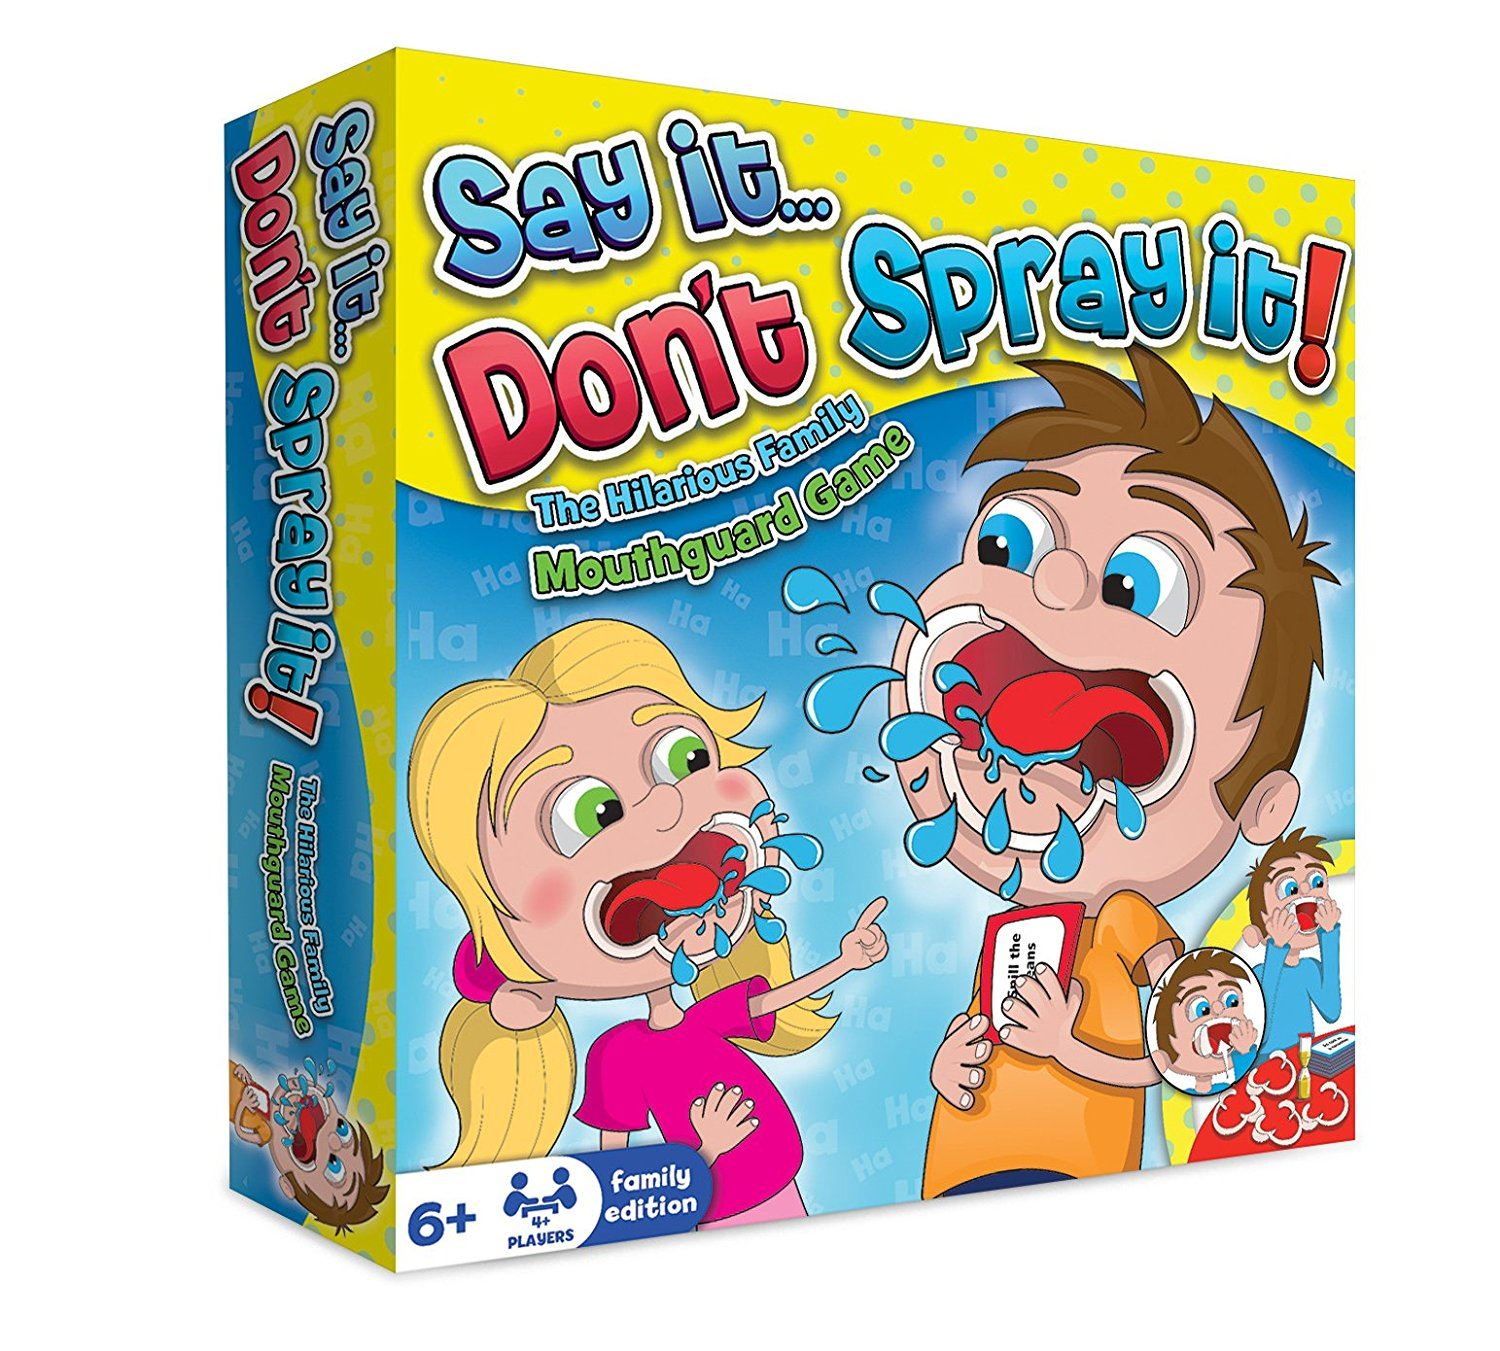 Juego De Mesa Splash Say It Don 39t Spray It Party Game The Hilarious